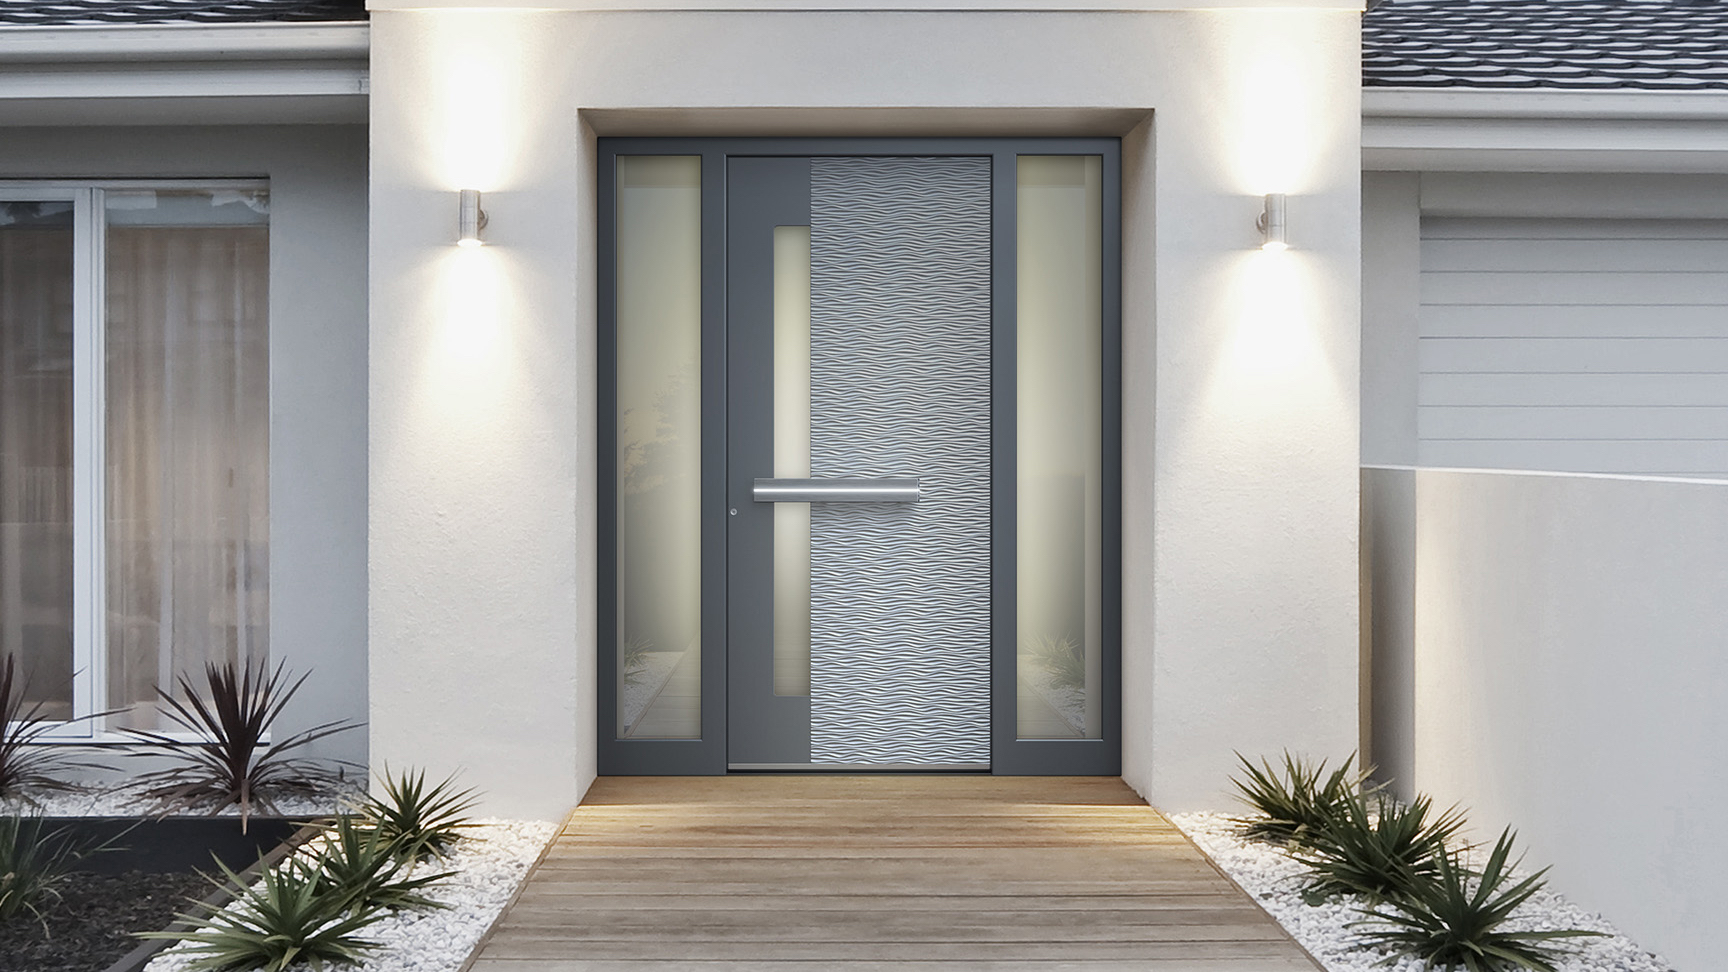 """Entrance doors   When the word """"best"""" applies to every characteristic, it's a product that's as good as it gets. The best insulated aluminum door with the thickest profile creates an unmatched feeling of security and comfort. Immaculate craftsmanship adds perfection to any design, from an old country look to a high-tech flat panel. And just like everything TAG, these doors can reach enormous dimensions."""